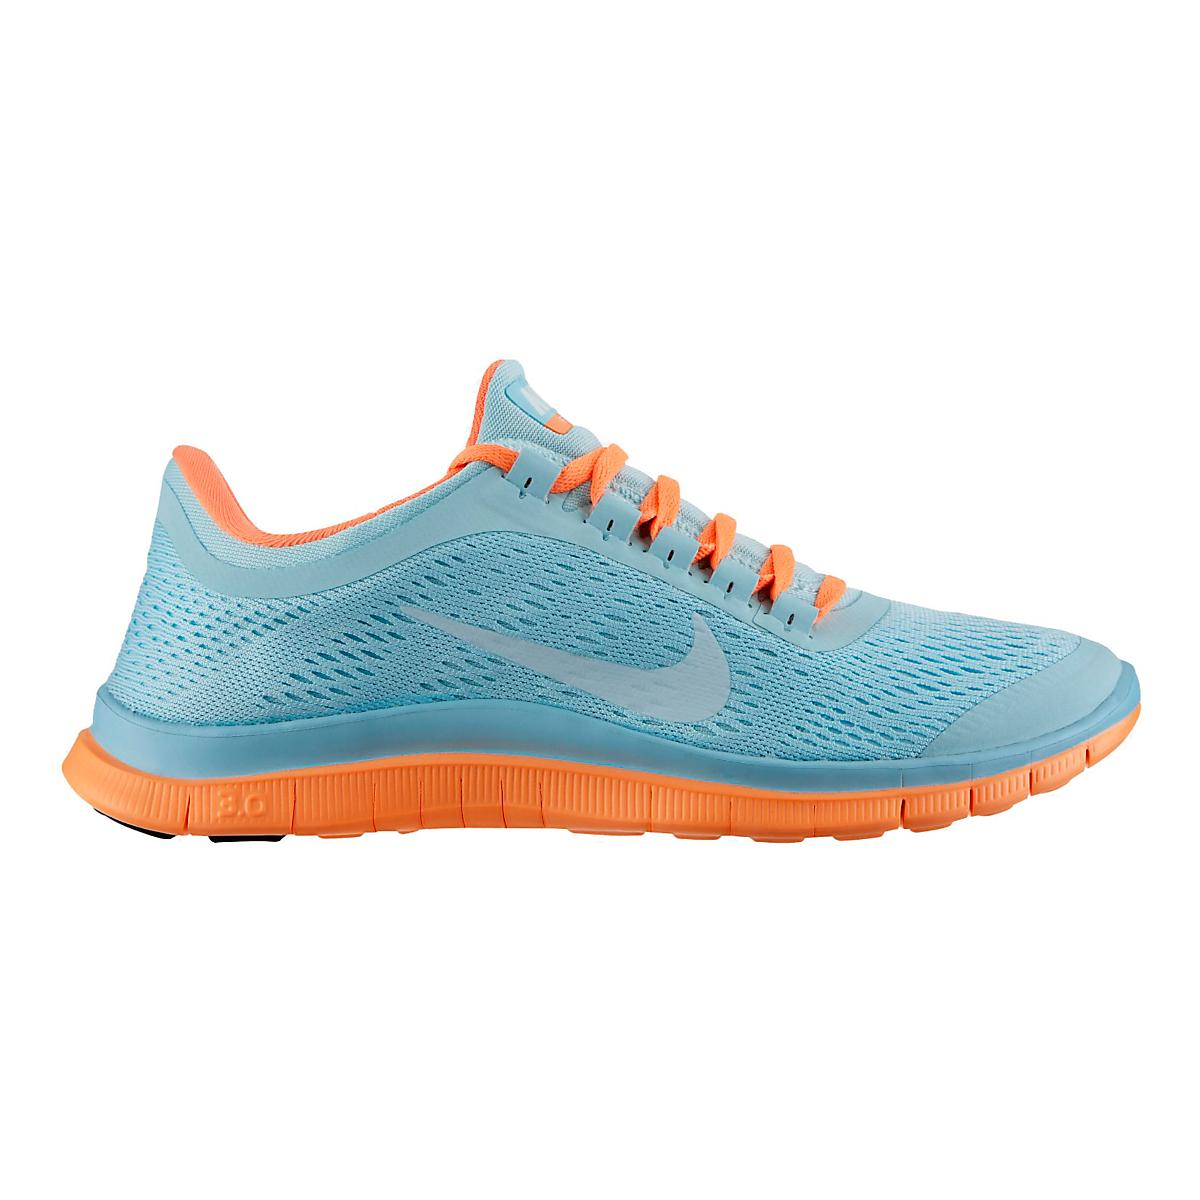 buy popular 200f2 dc668 Womens Nike Free 3.0 v5 Running Shoe at Road Runner Sports